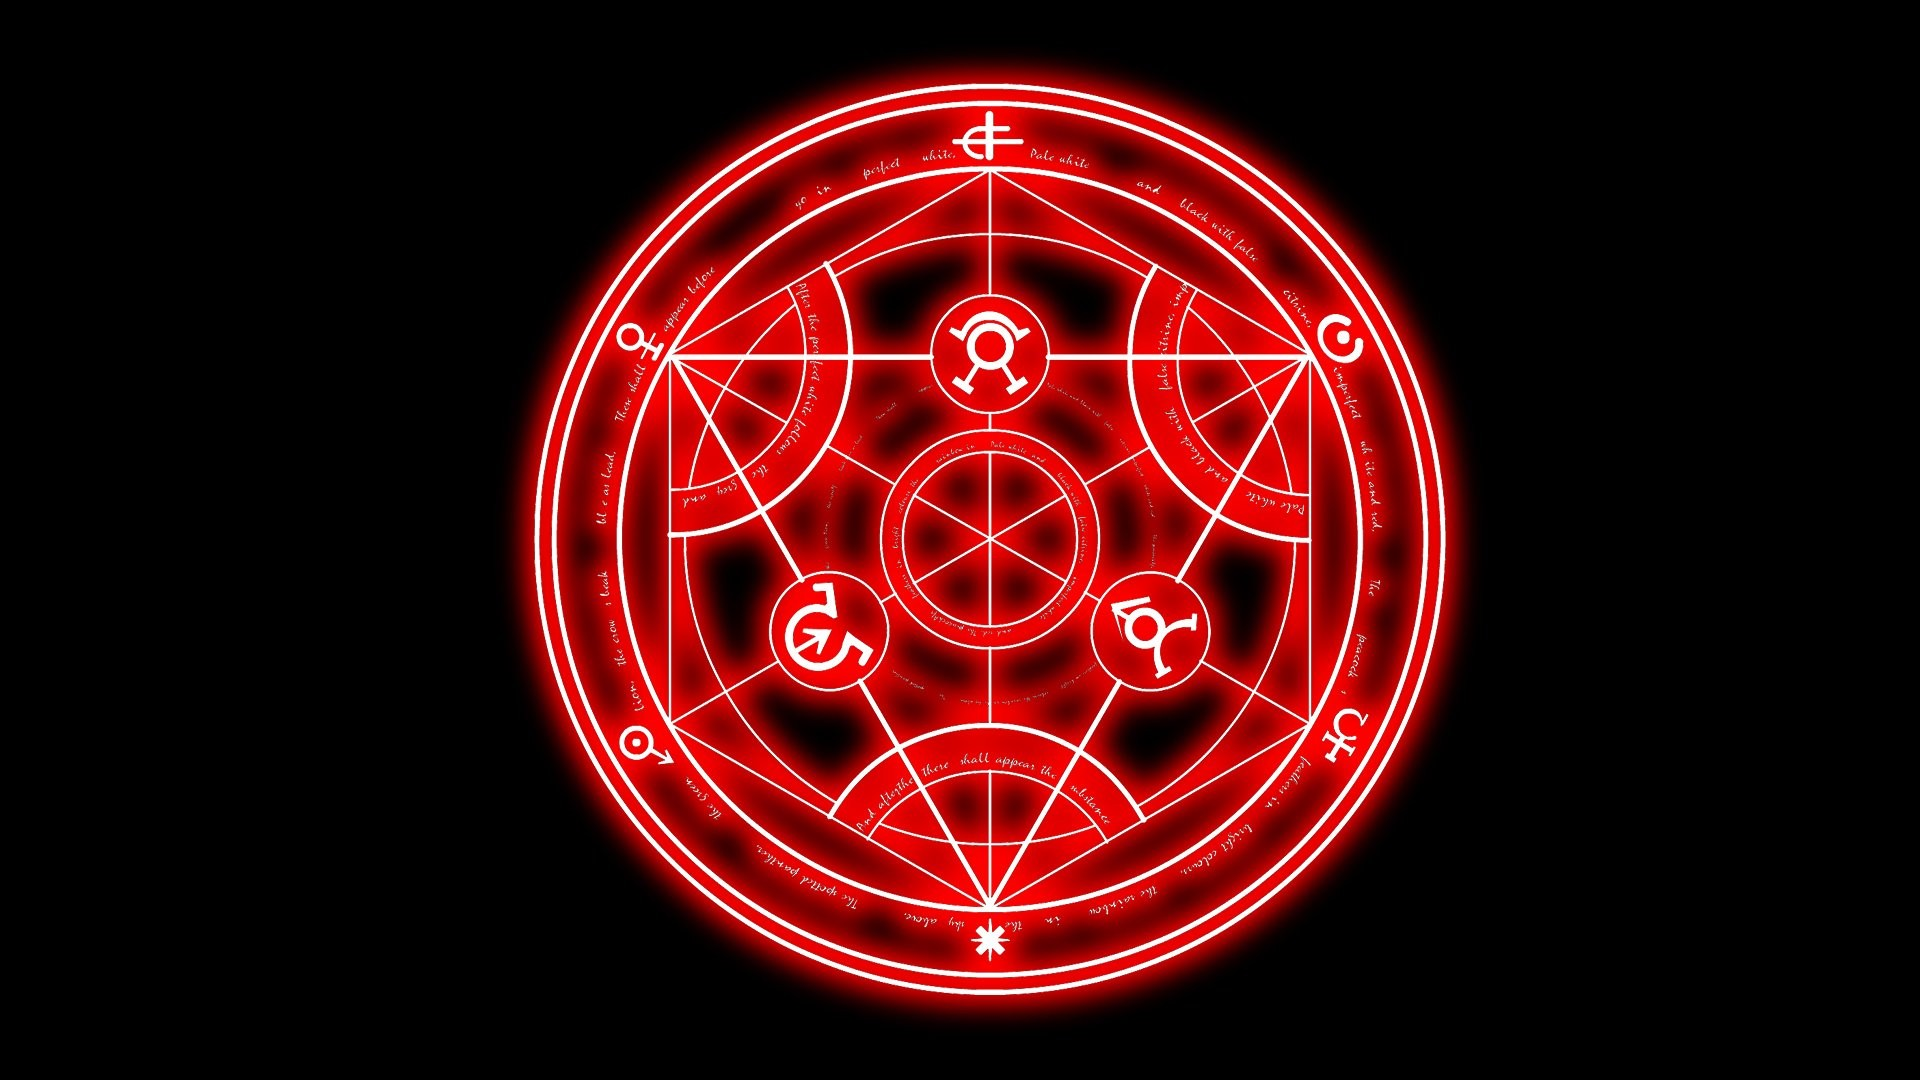 Fullmetal Alchemist Brotherhood Wallpaper Download Free Stunning